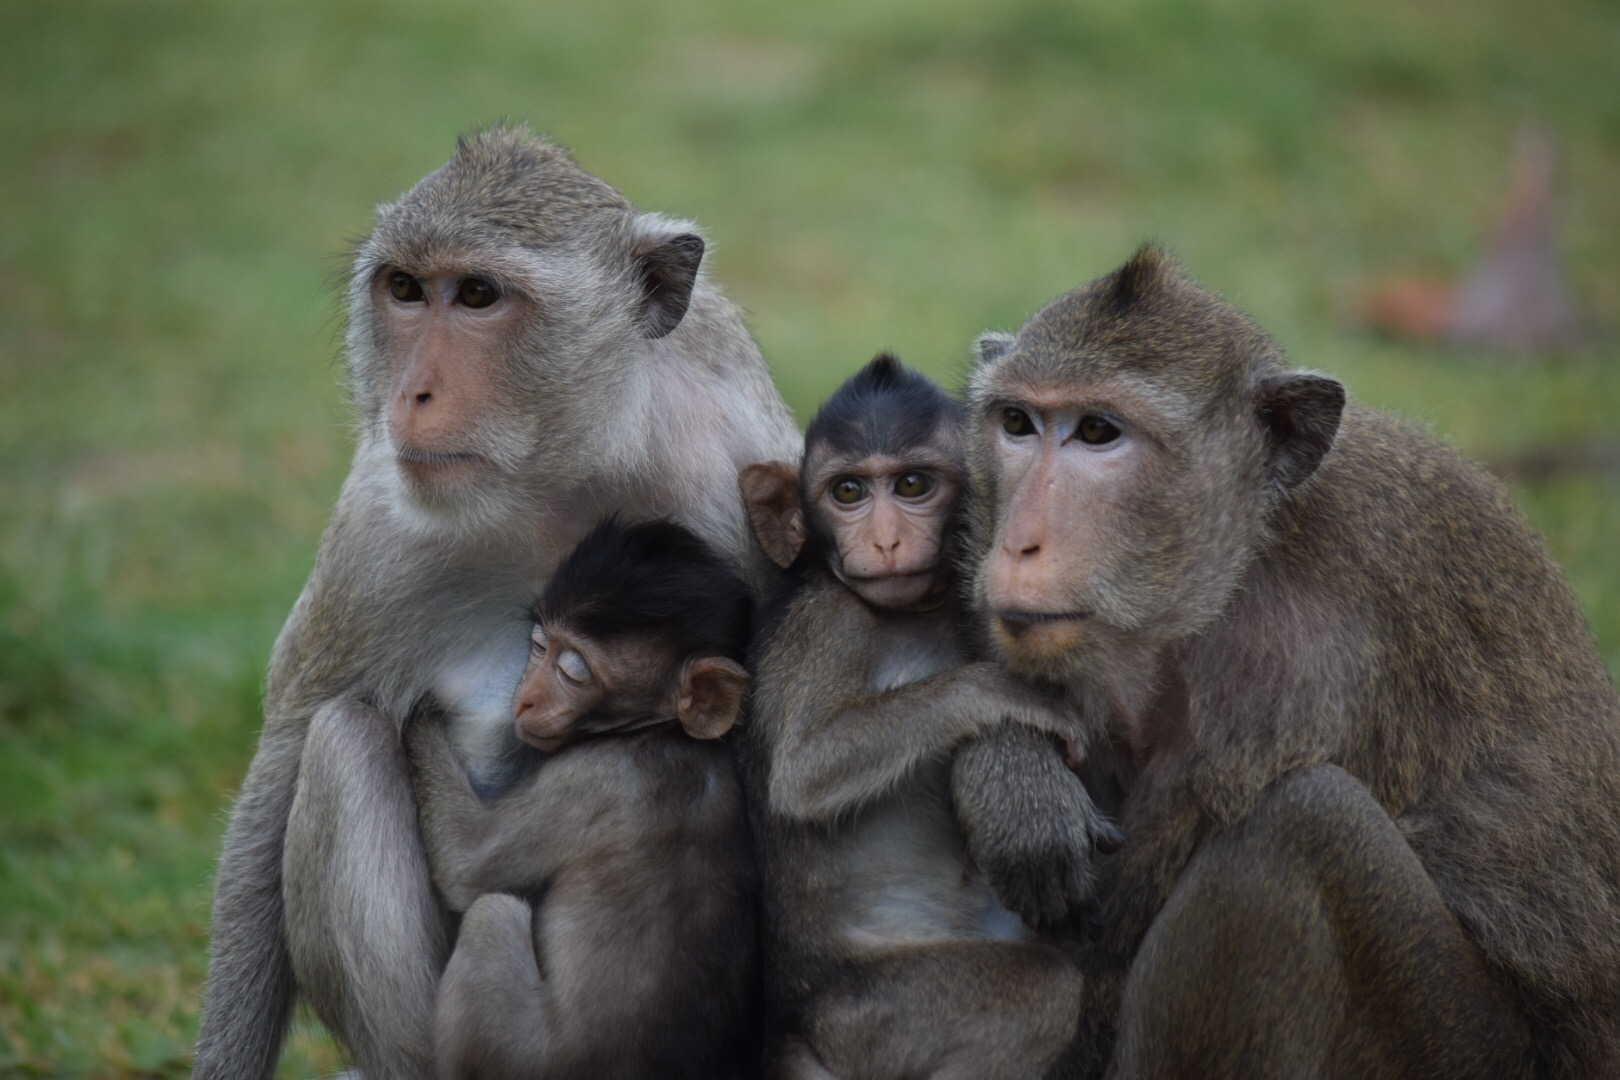 This Angkor Wat monkey family saw my camera and immediately gathered together to pose for a picture.  (If only our kids could take a lesson or two on how to do this....)